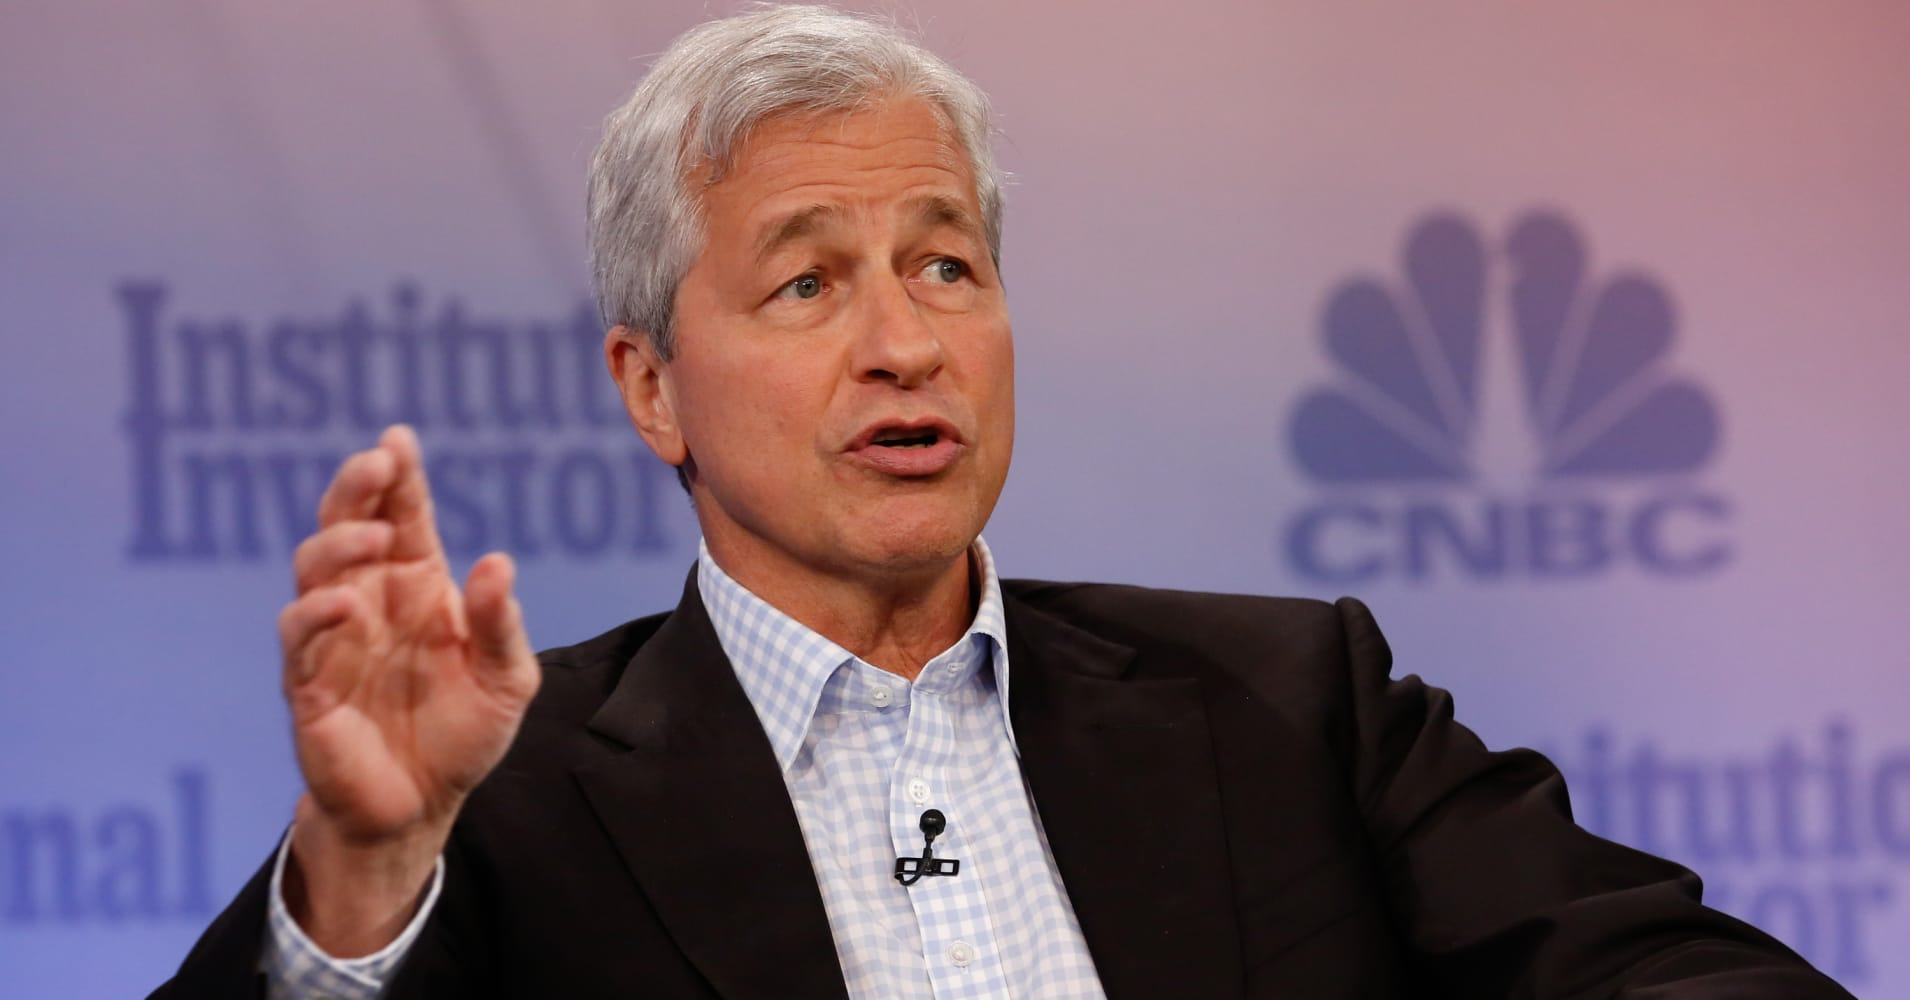 Jamie Dimon calls Bitcoin a fraud that will blow up...